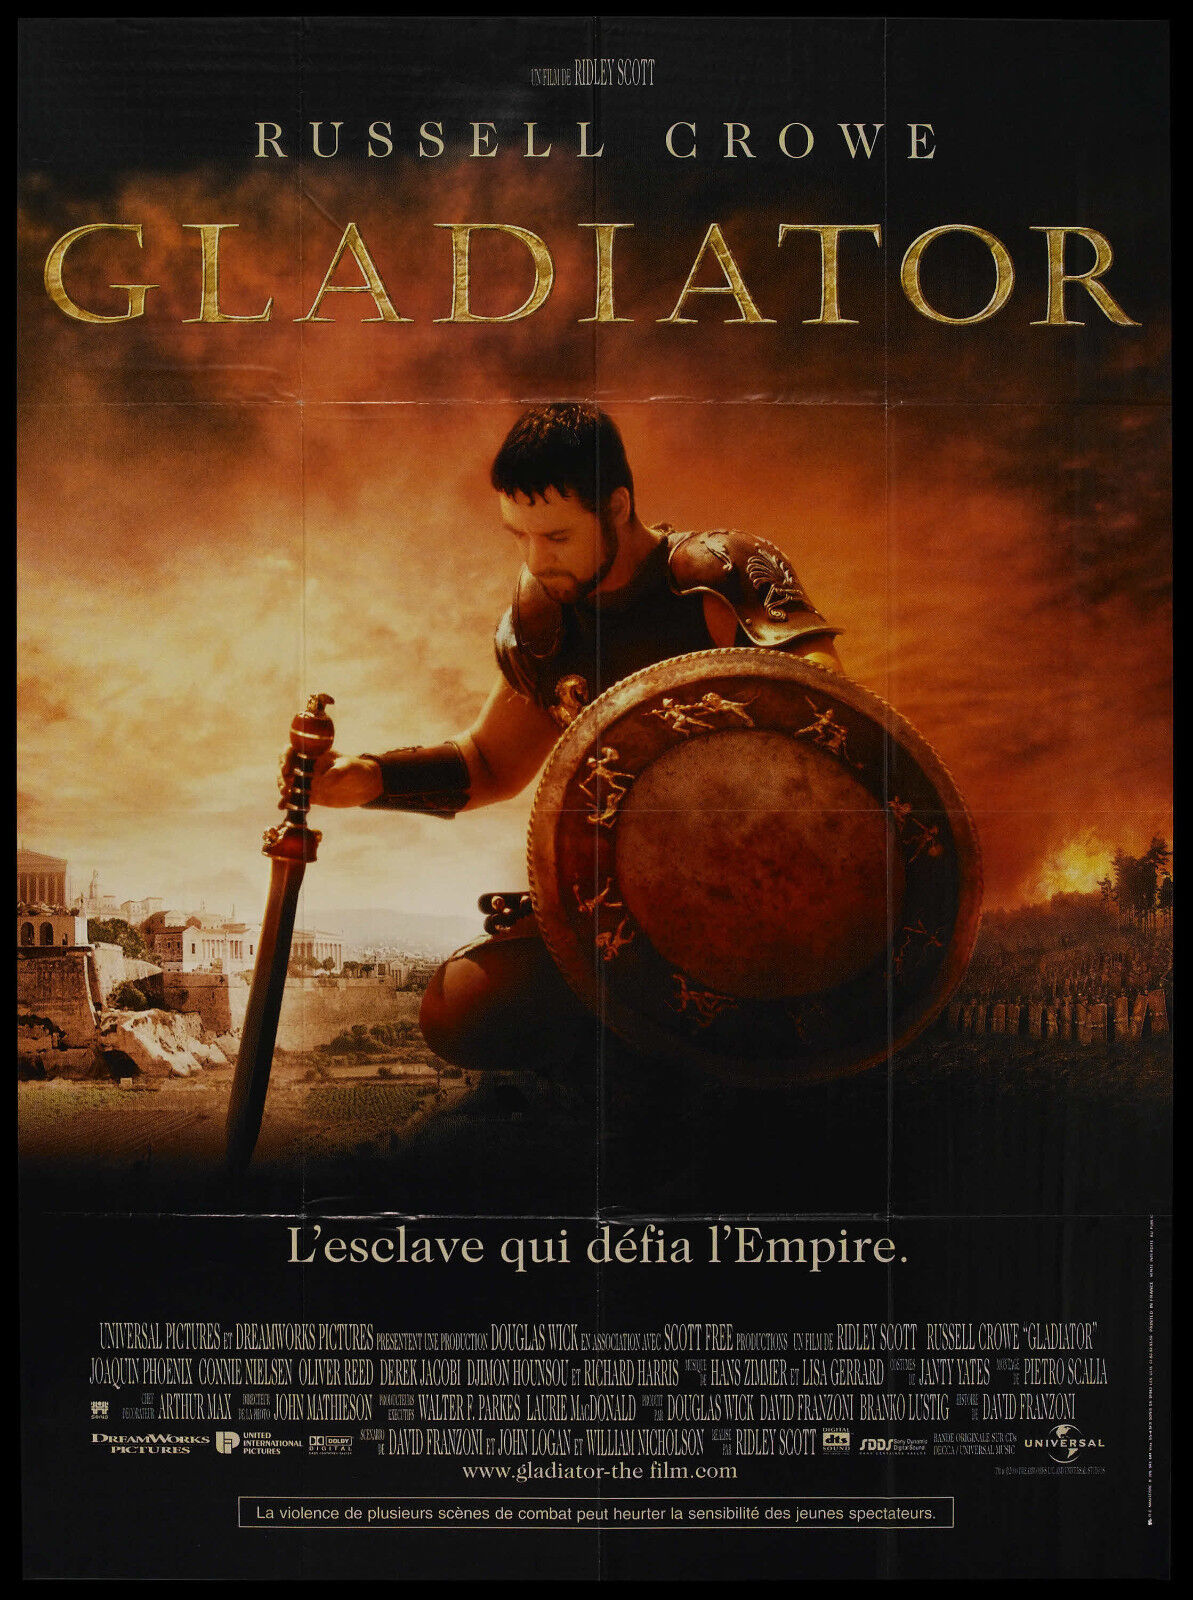 Gladiator original 2000 large movie poster russell crowe/oliver reed